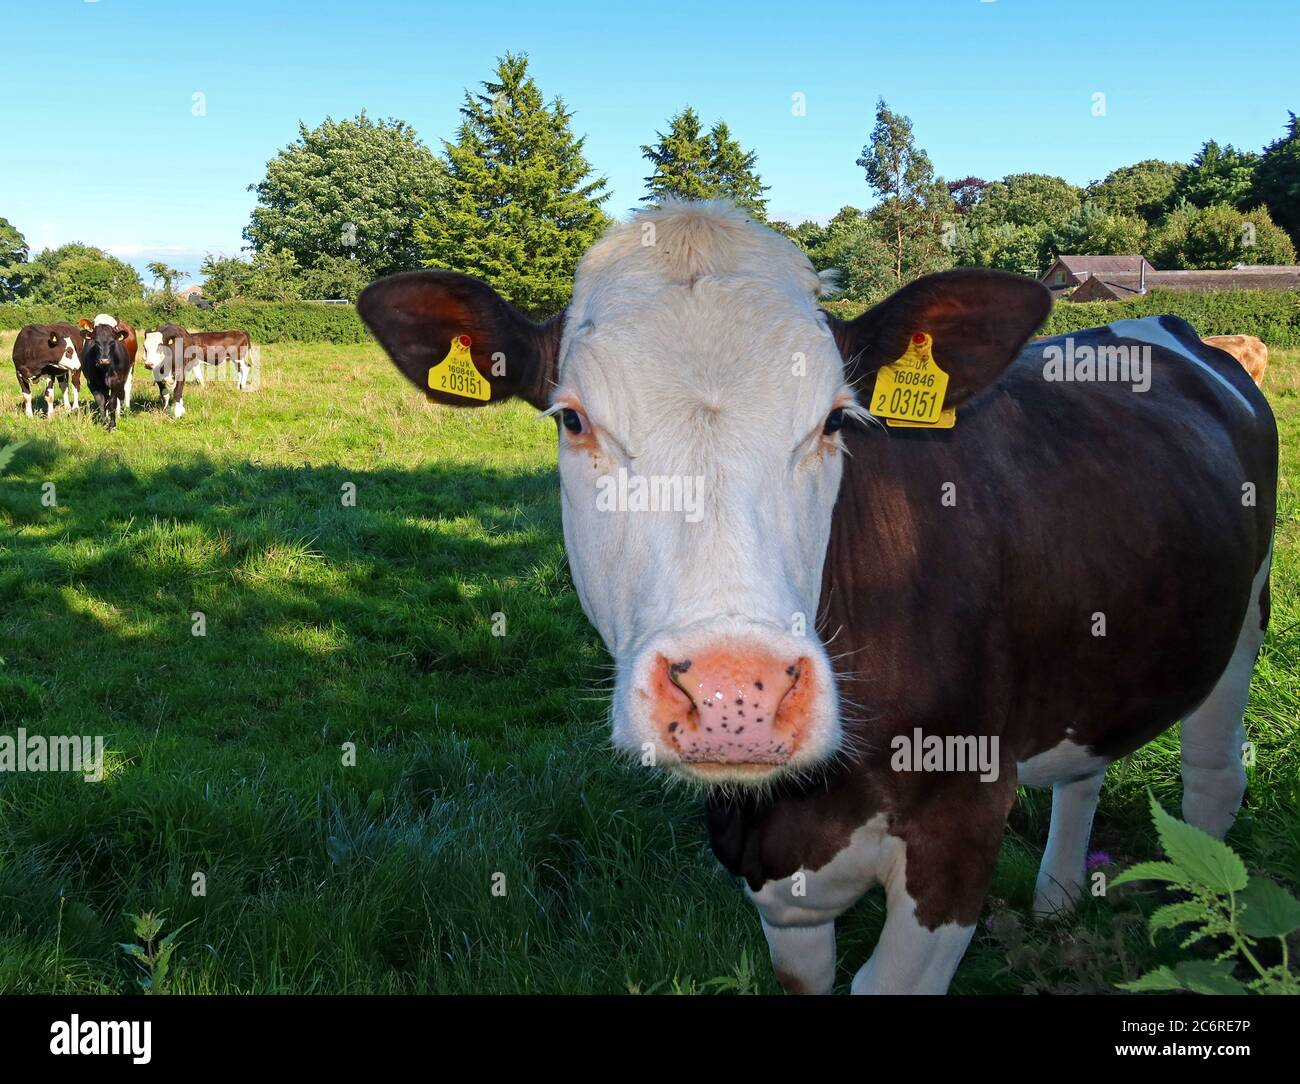 British beef cattle, country agriculture, Cheshire countryside,England,UK - quality husbandry Stock Photo